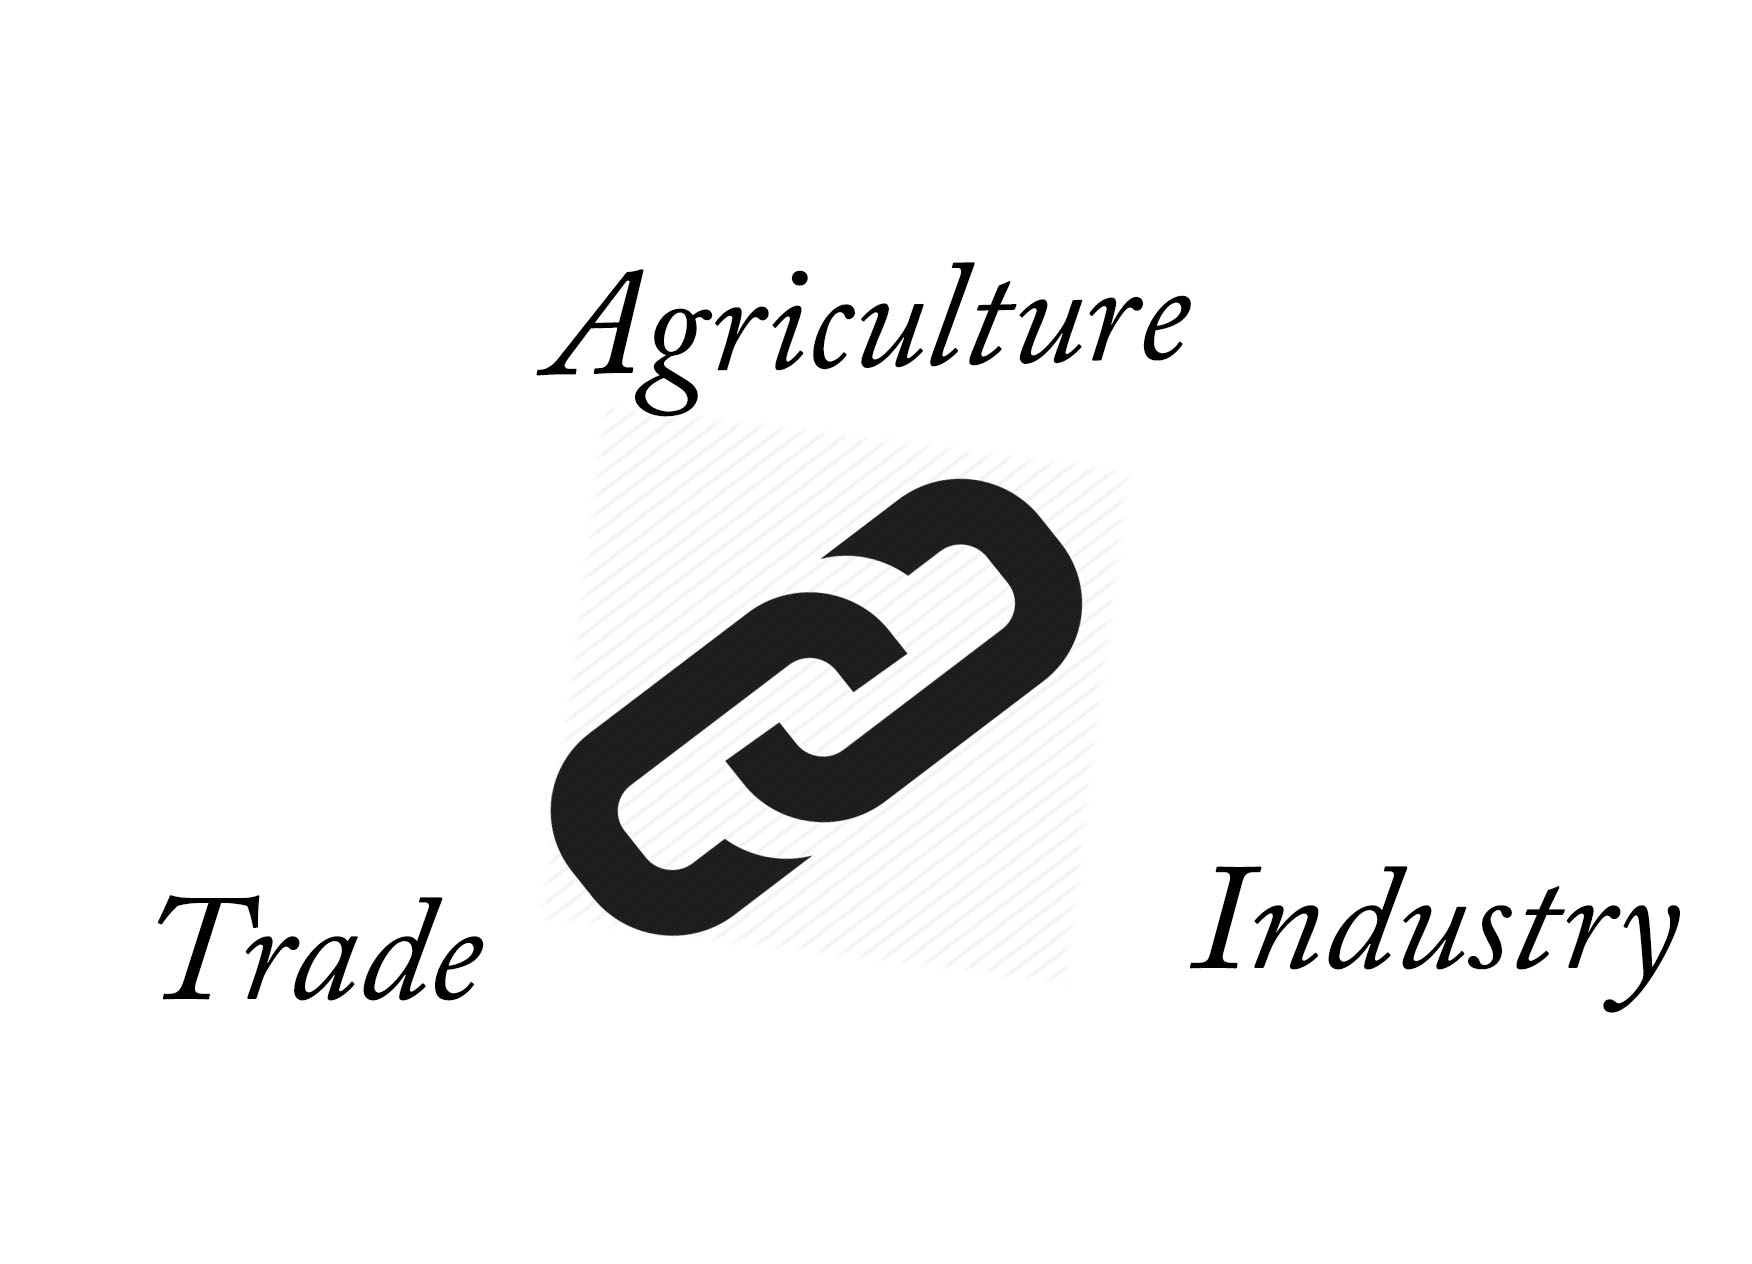 Notes on Relation among Agriculture, Industry and Trade